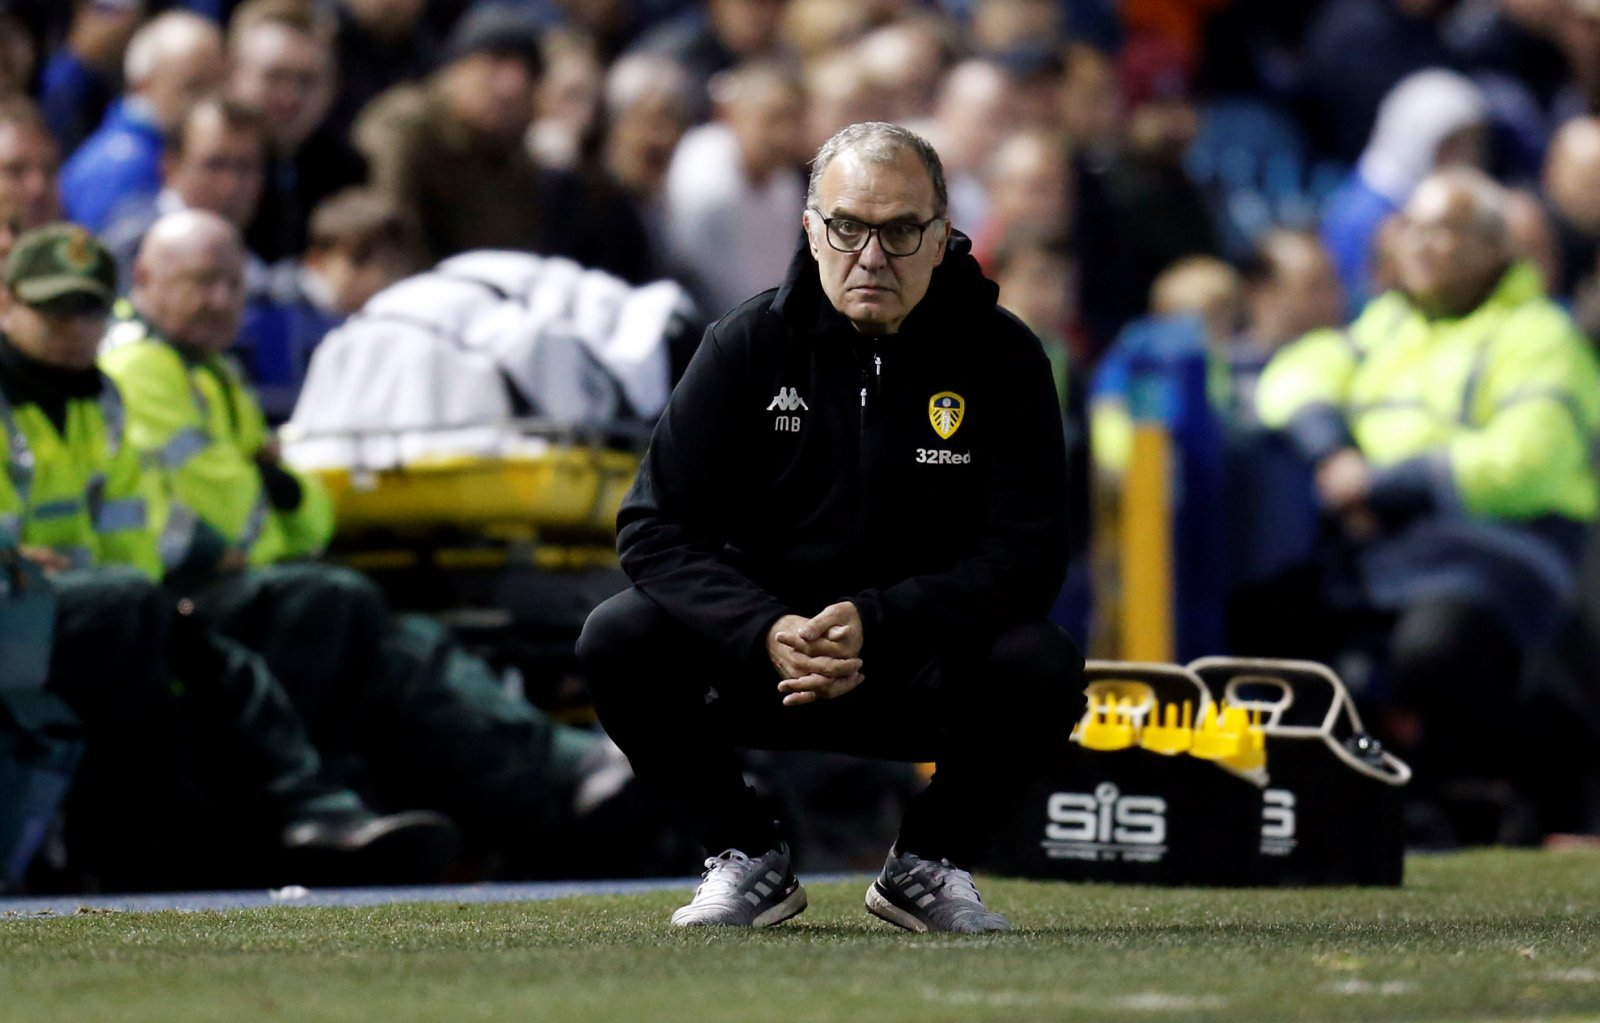 Bielsa needs to think about offloading Saiz and Alioski